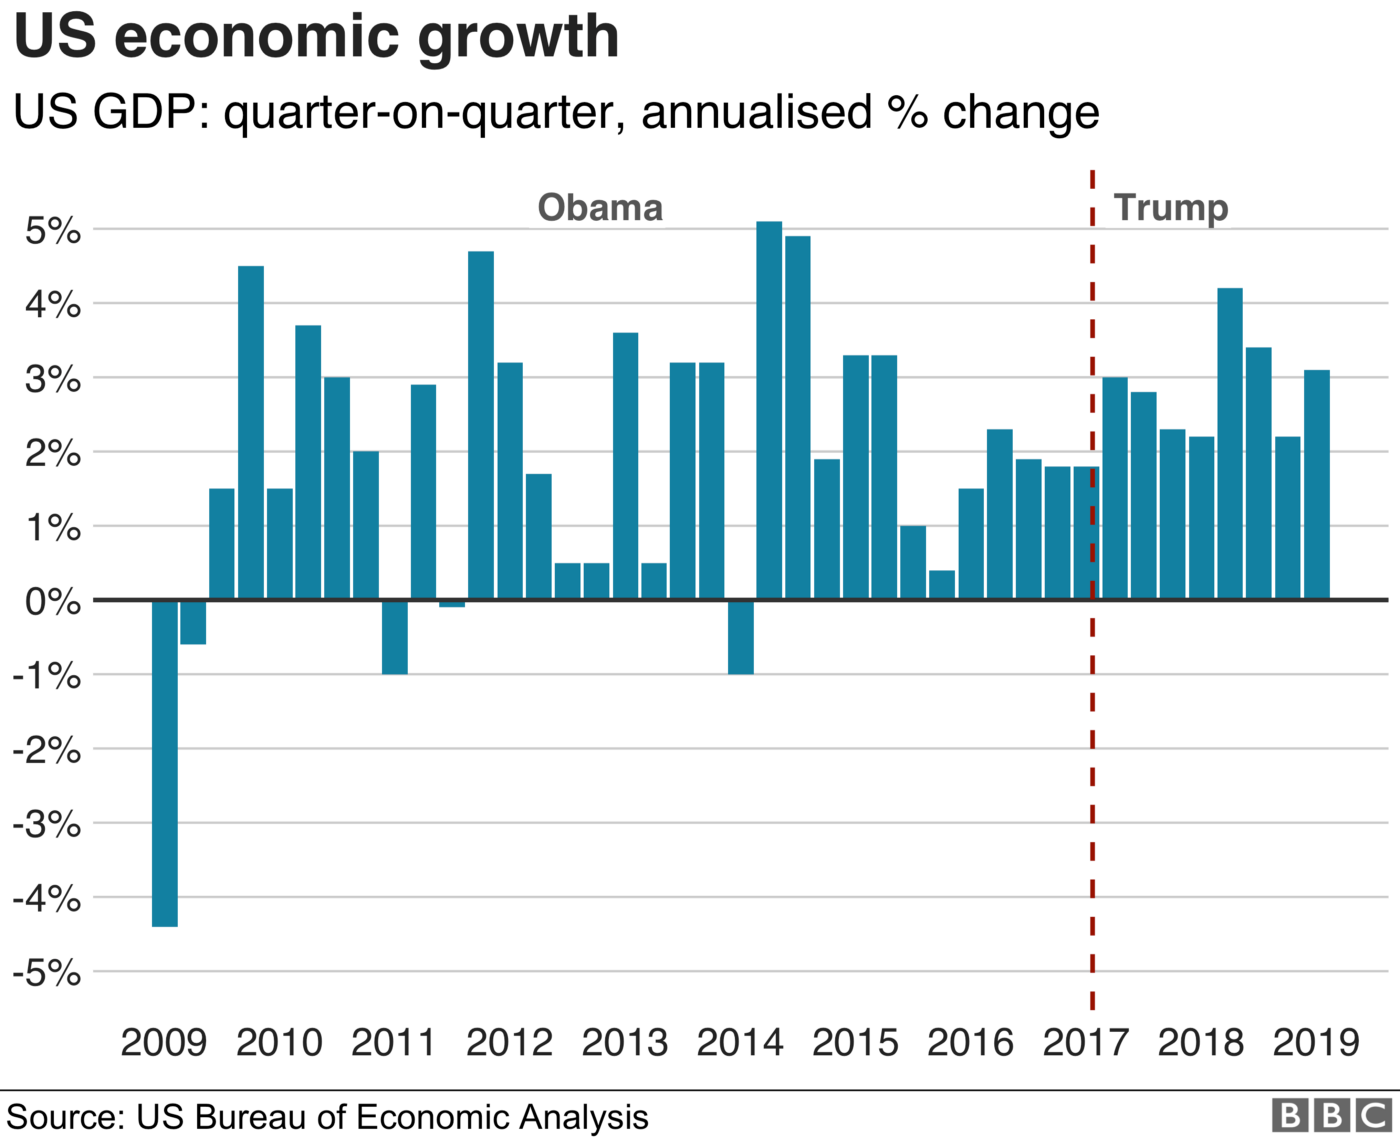 US economic growth over the last 20 years seems to paint a positive light